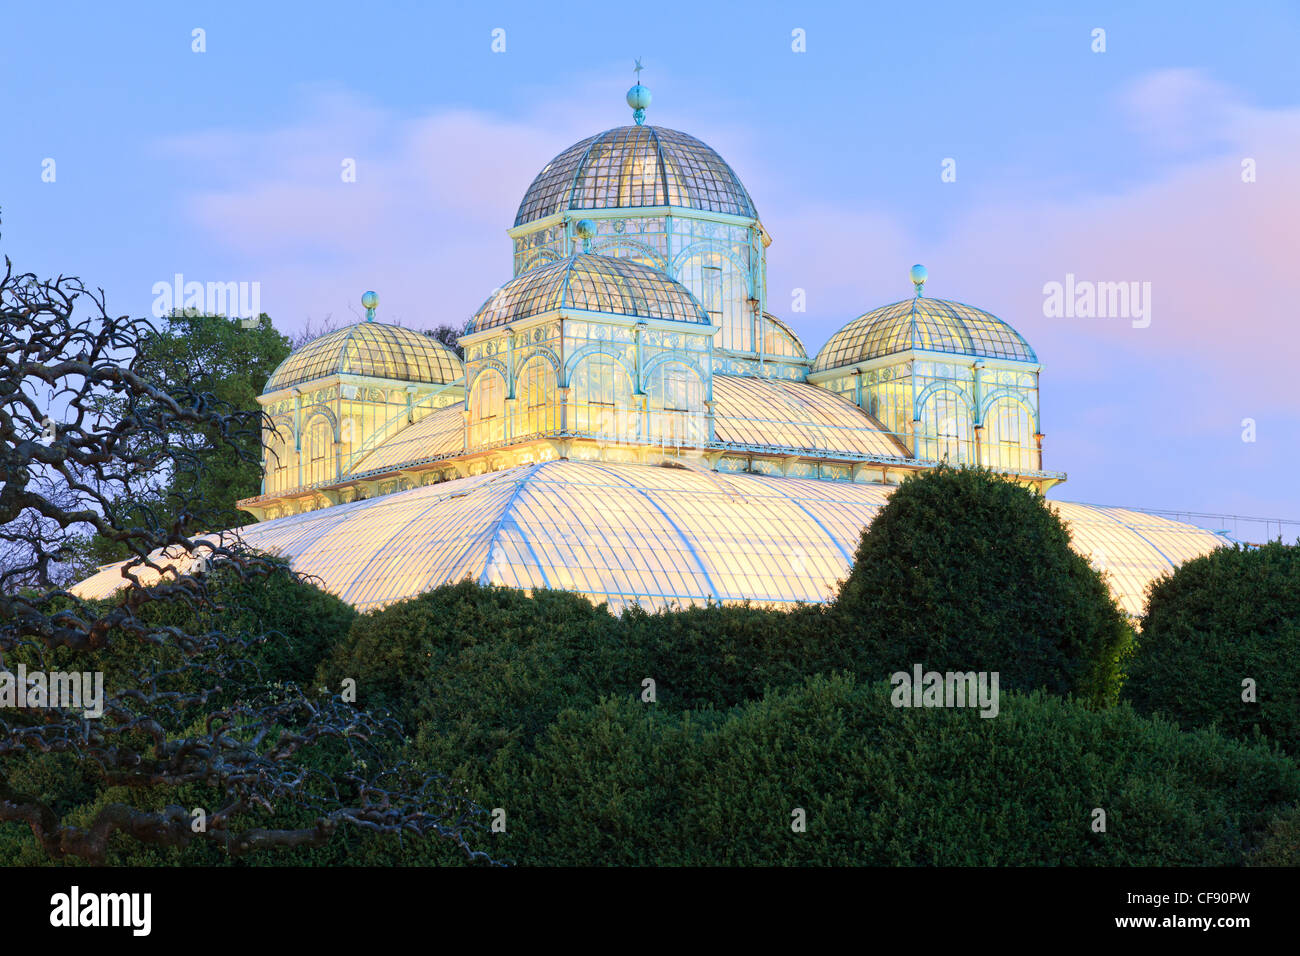 Belgium, Brussels, Laeken, the royal castle domain, the greenhouses of Laeken, the greenhouse of Congo by night. - Stock Image